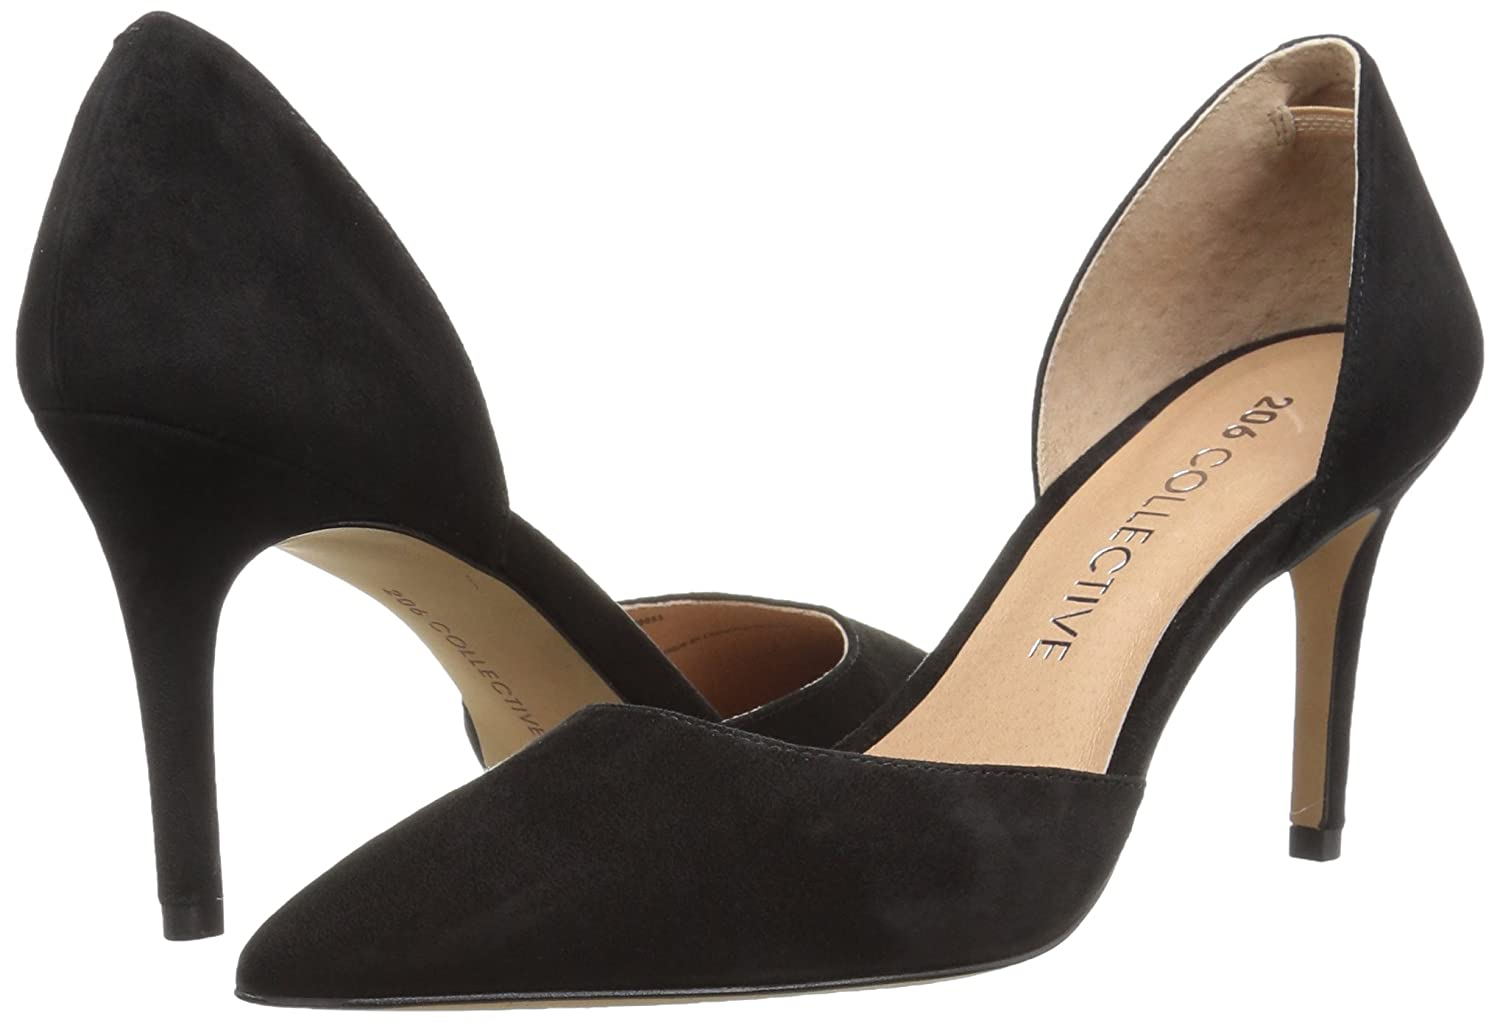 206 Collective Women's Adelaide D'Orsay Dress Pump B078B2GXDK 6.5 B(M) US|Black Suede